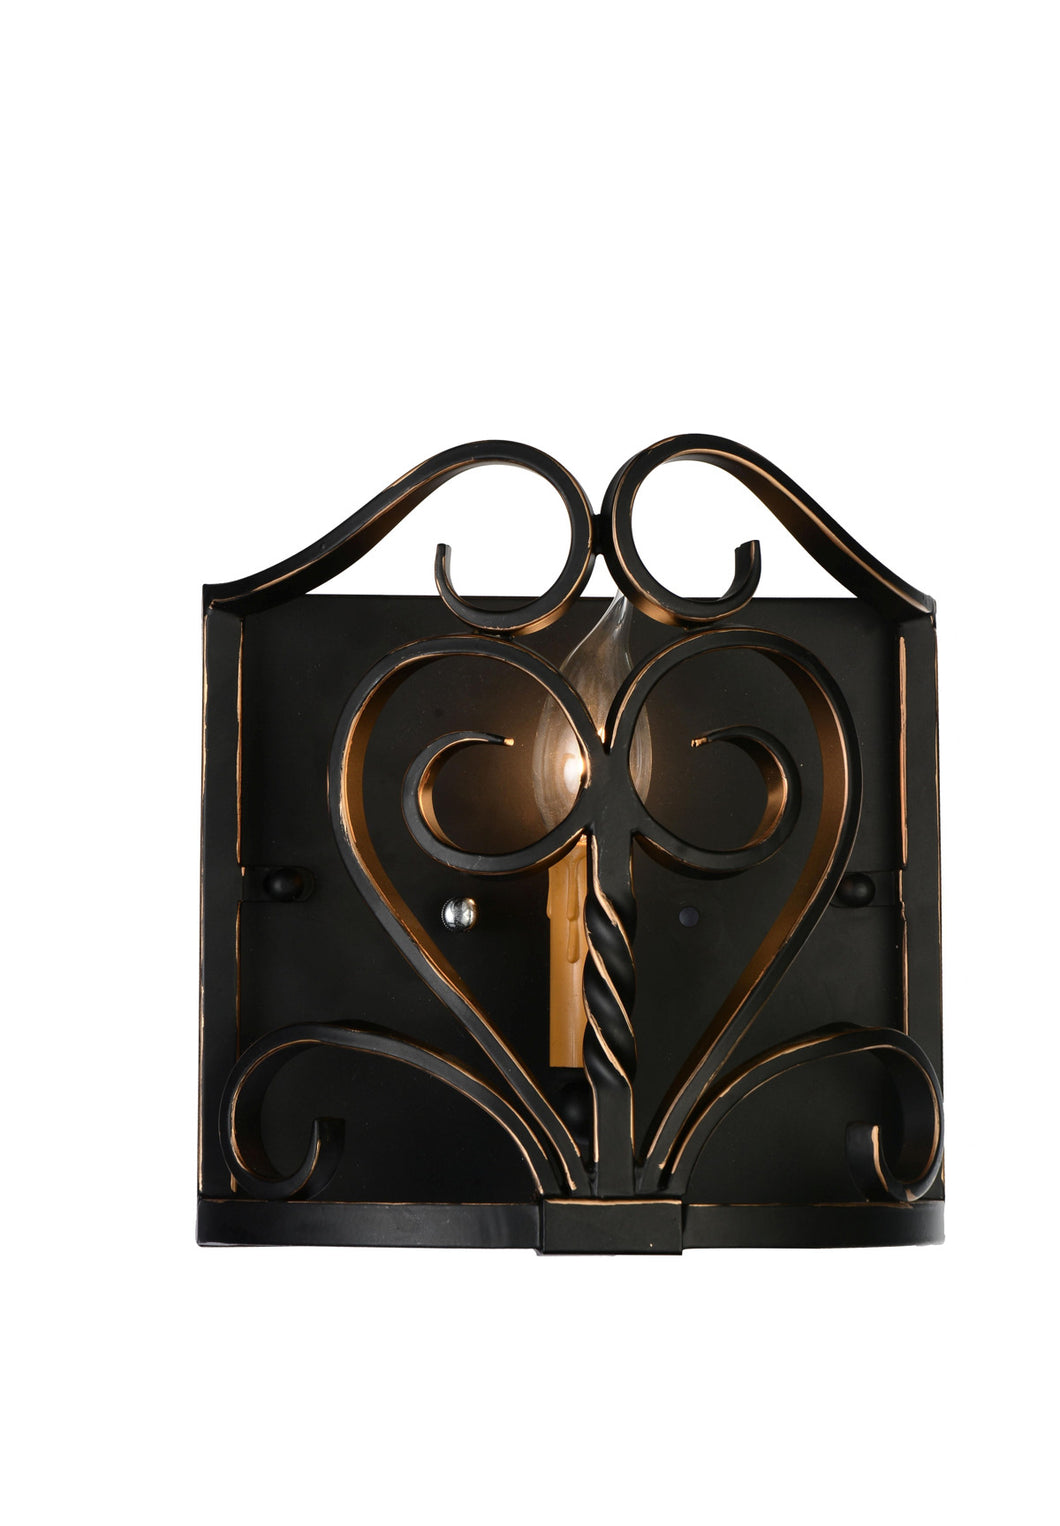 1 Light Wall Sconce with Autumn Bronze finish